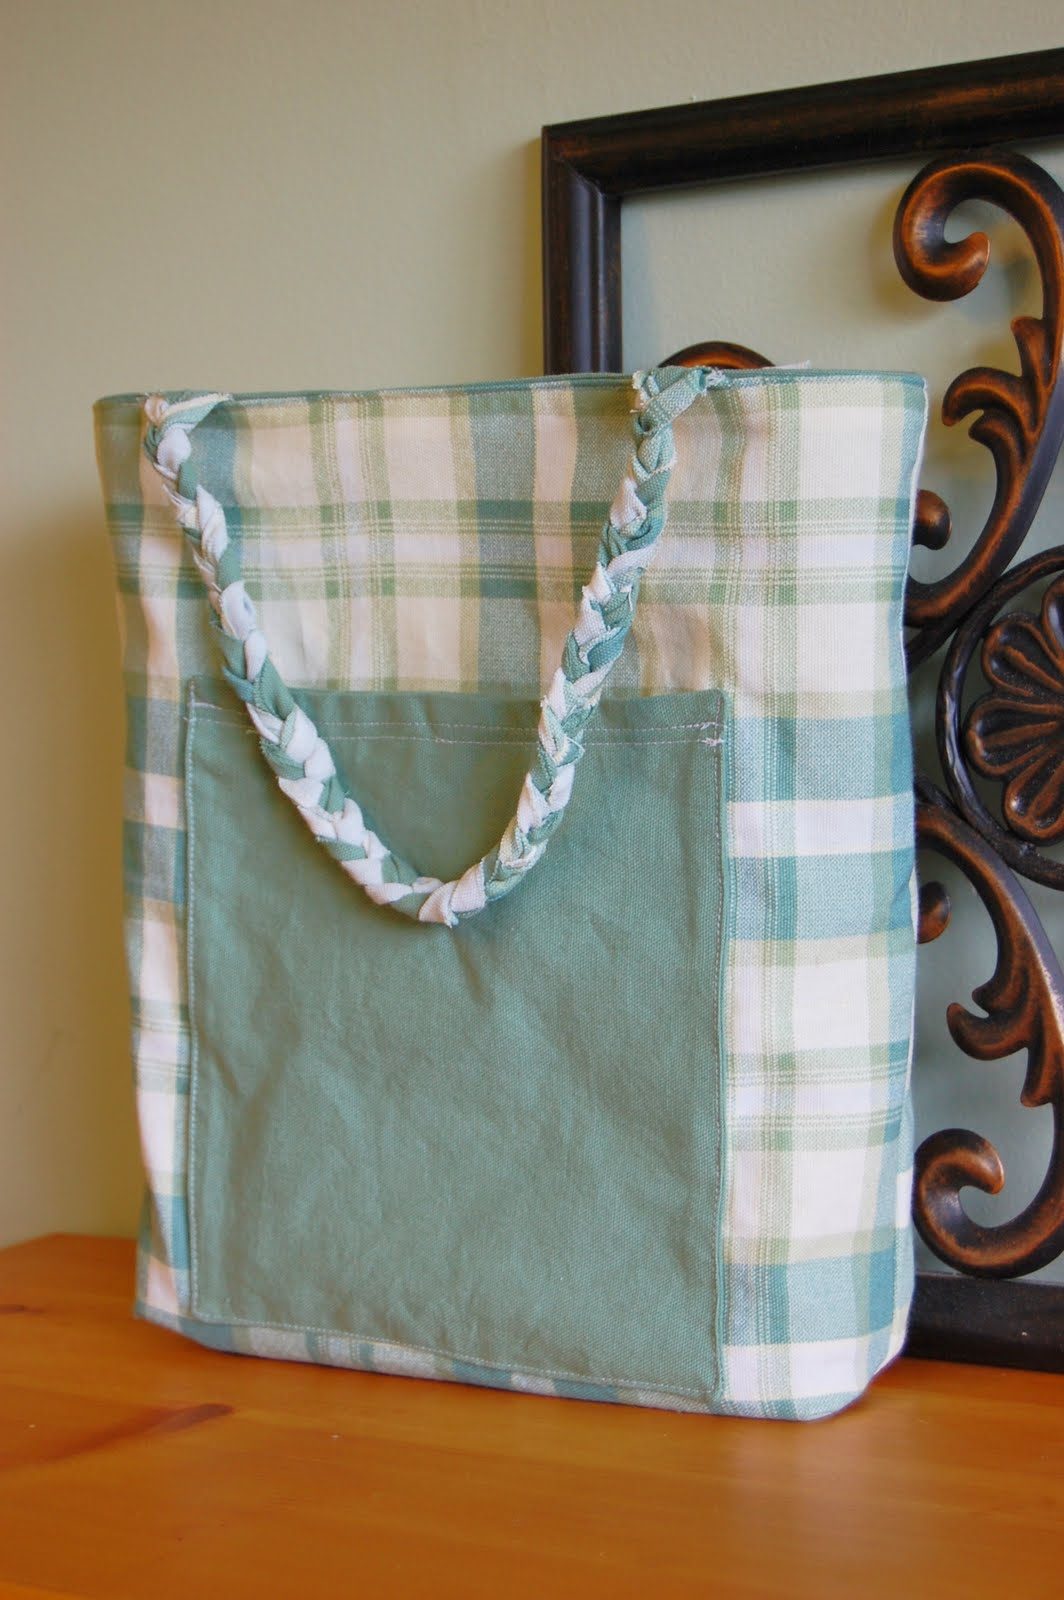 Reversible Canvas Tote Bag Tutorial